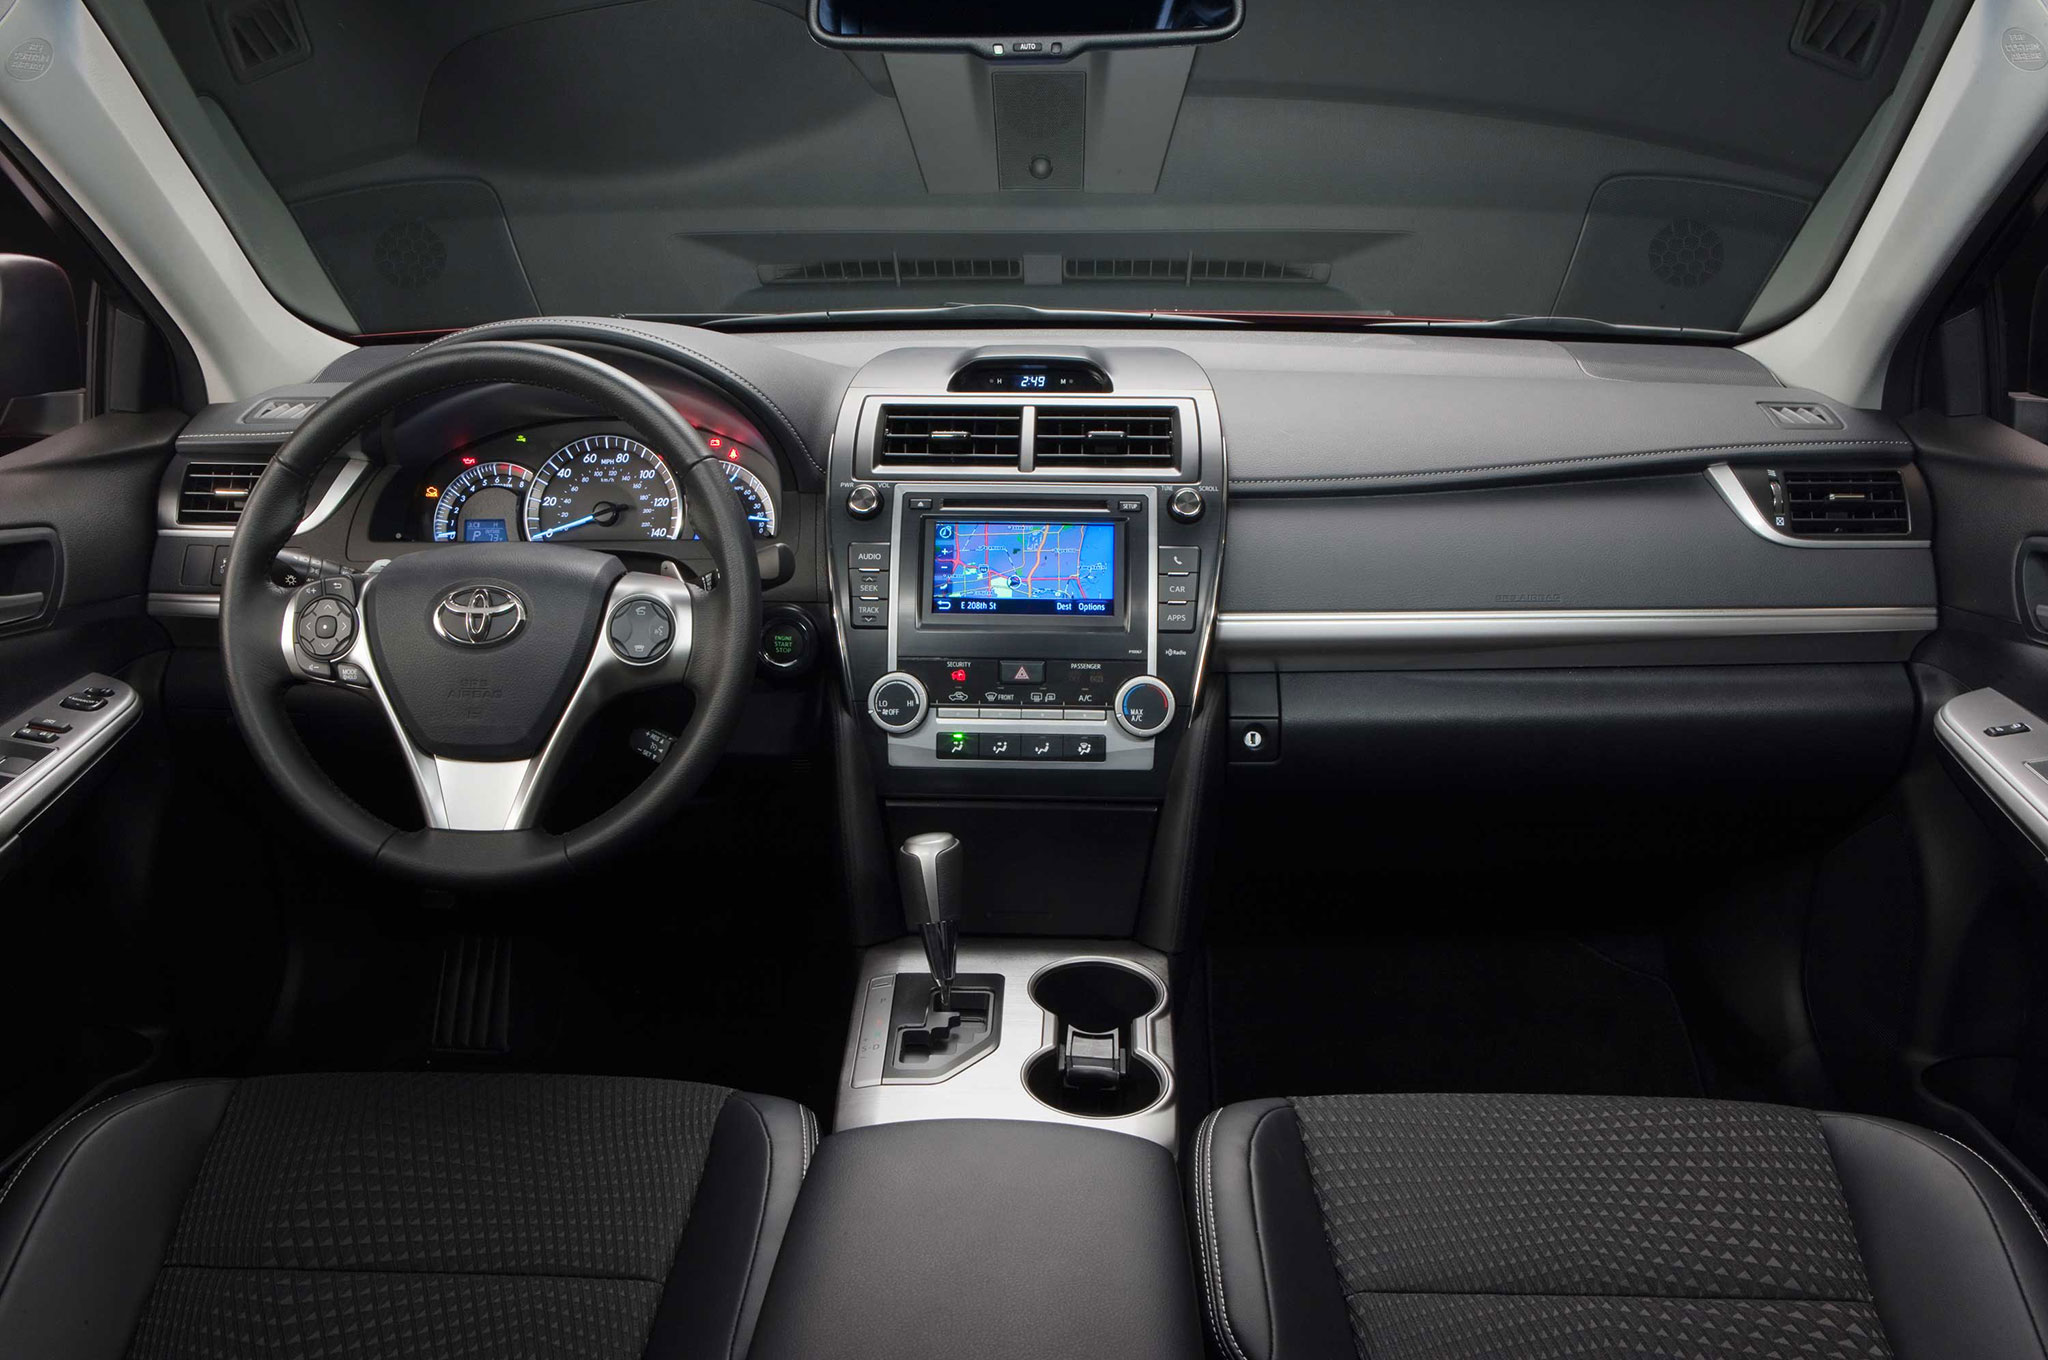 2014-Toyota-Camry-SE-interior-dash-view Stunning toyota Camry 2017 Le Vs Se Cars Trend